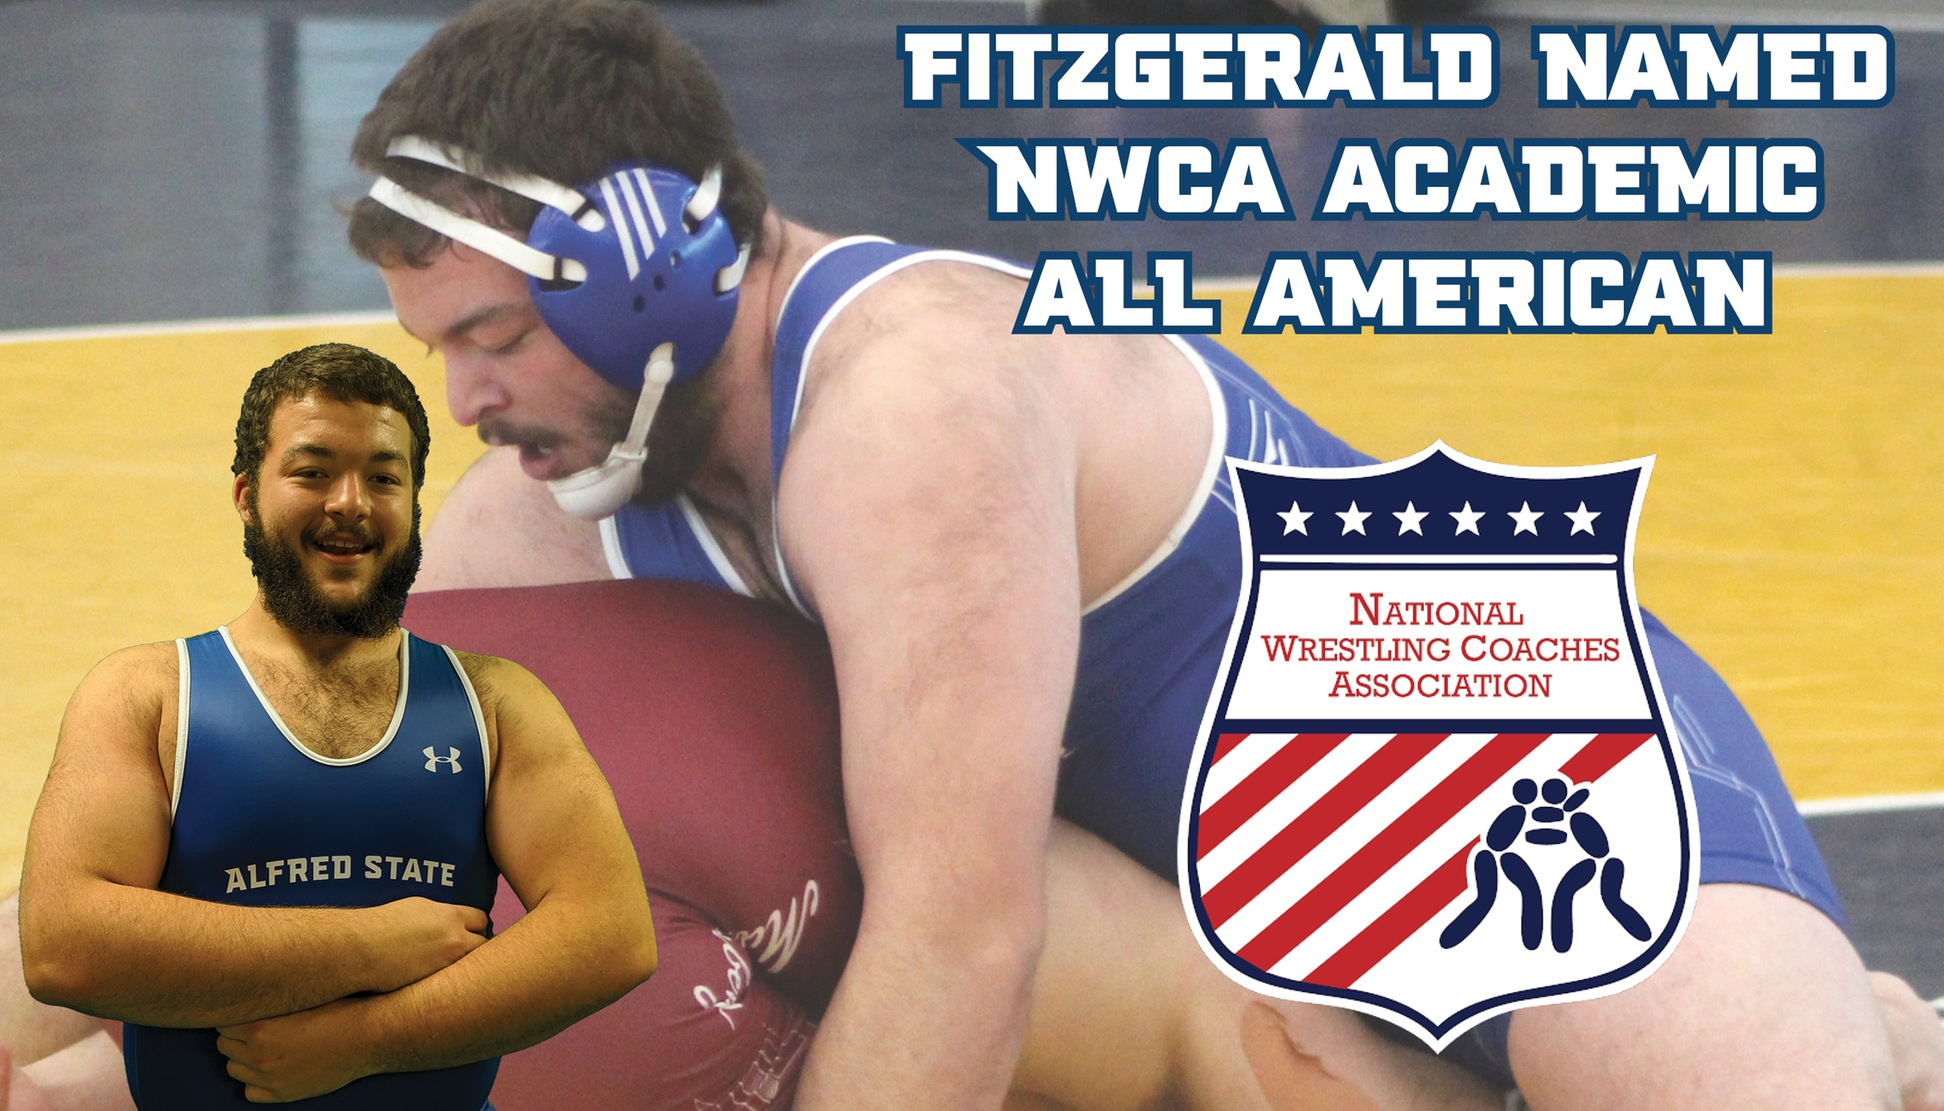 Kyle Fitzgerald named NWCA Academic All-American